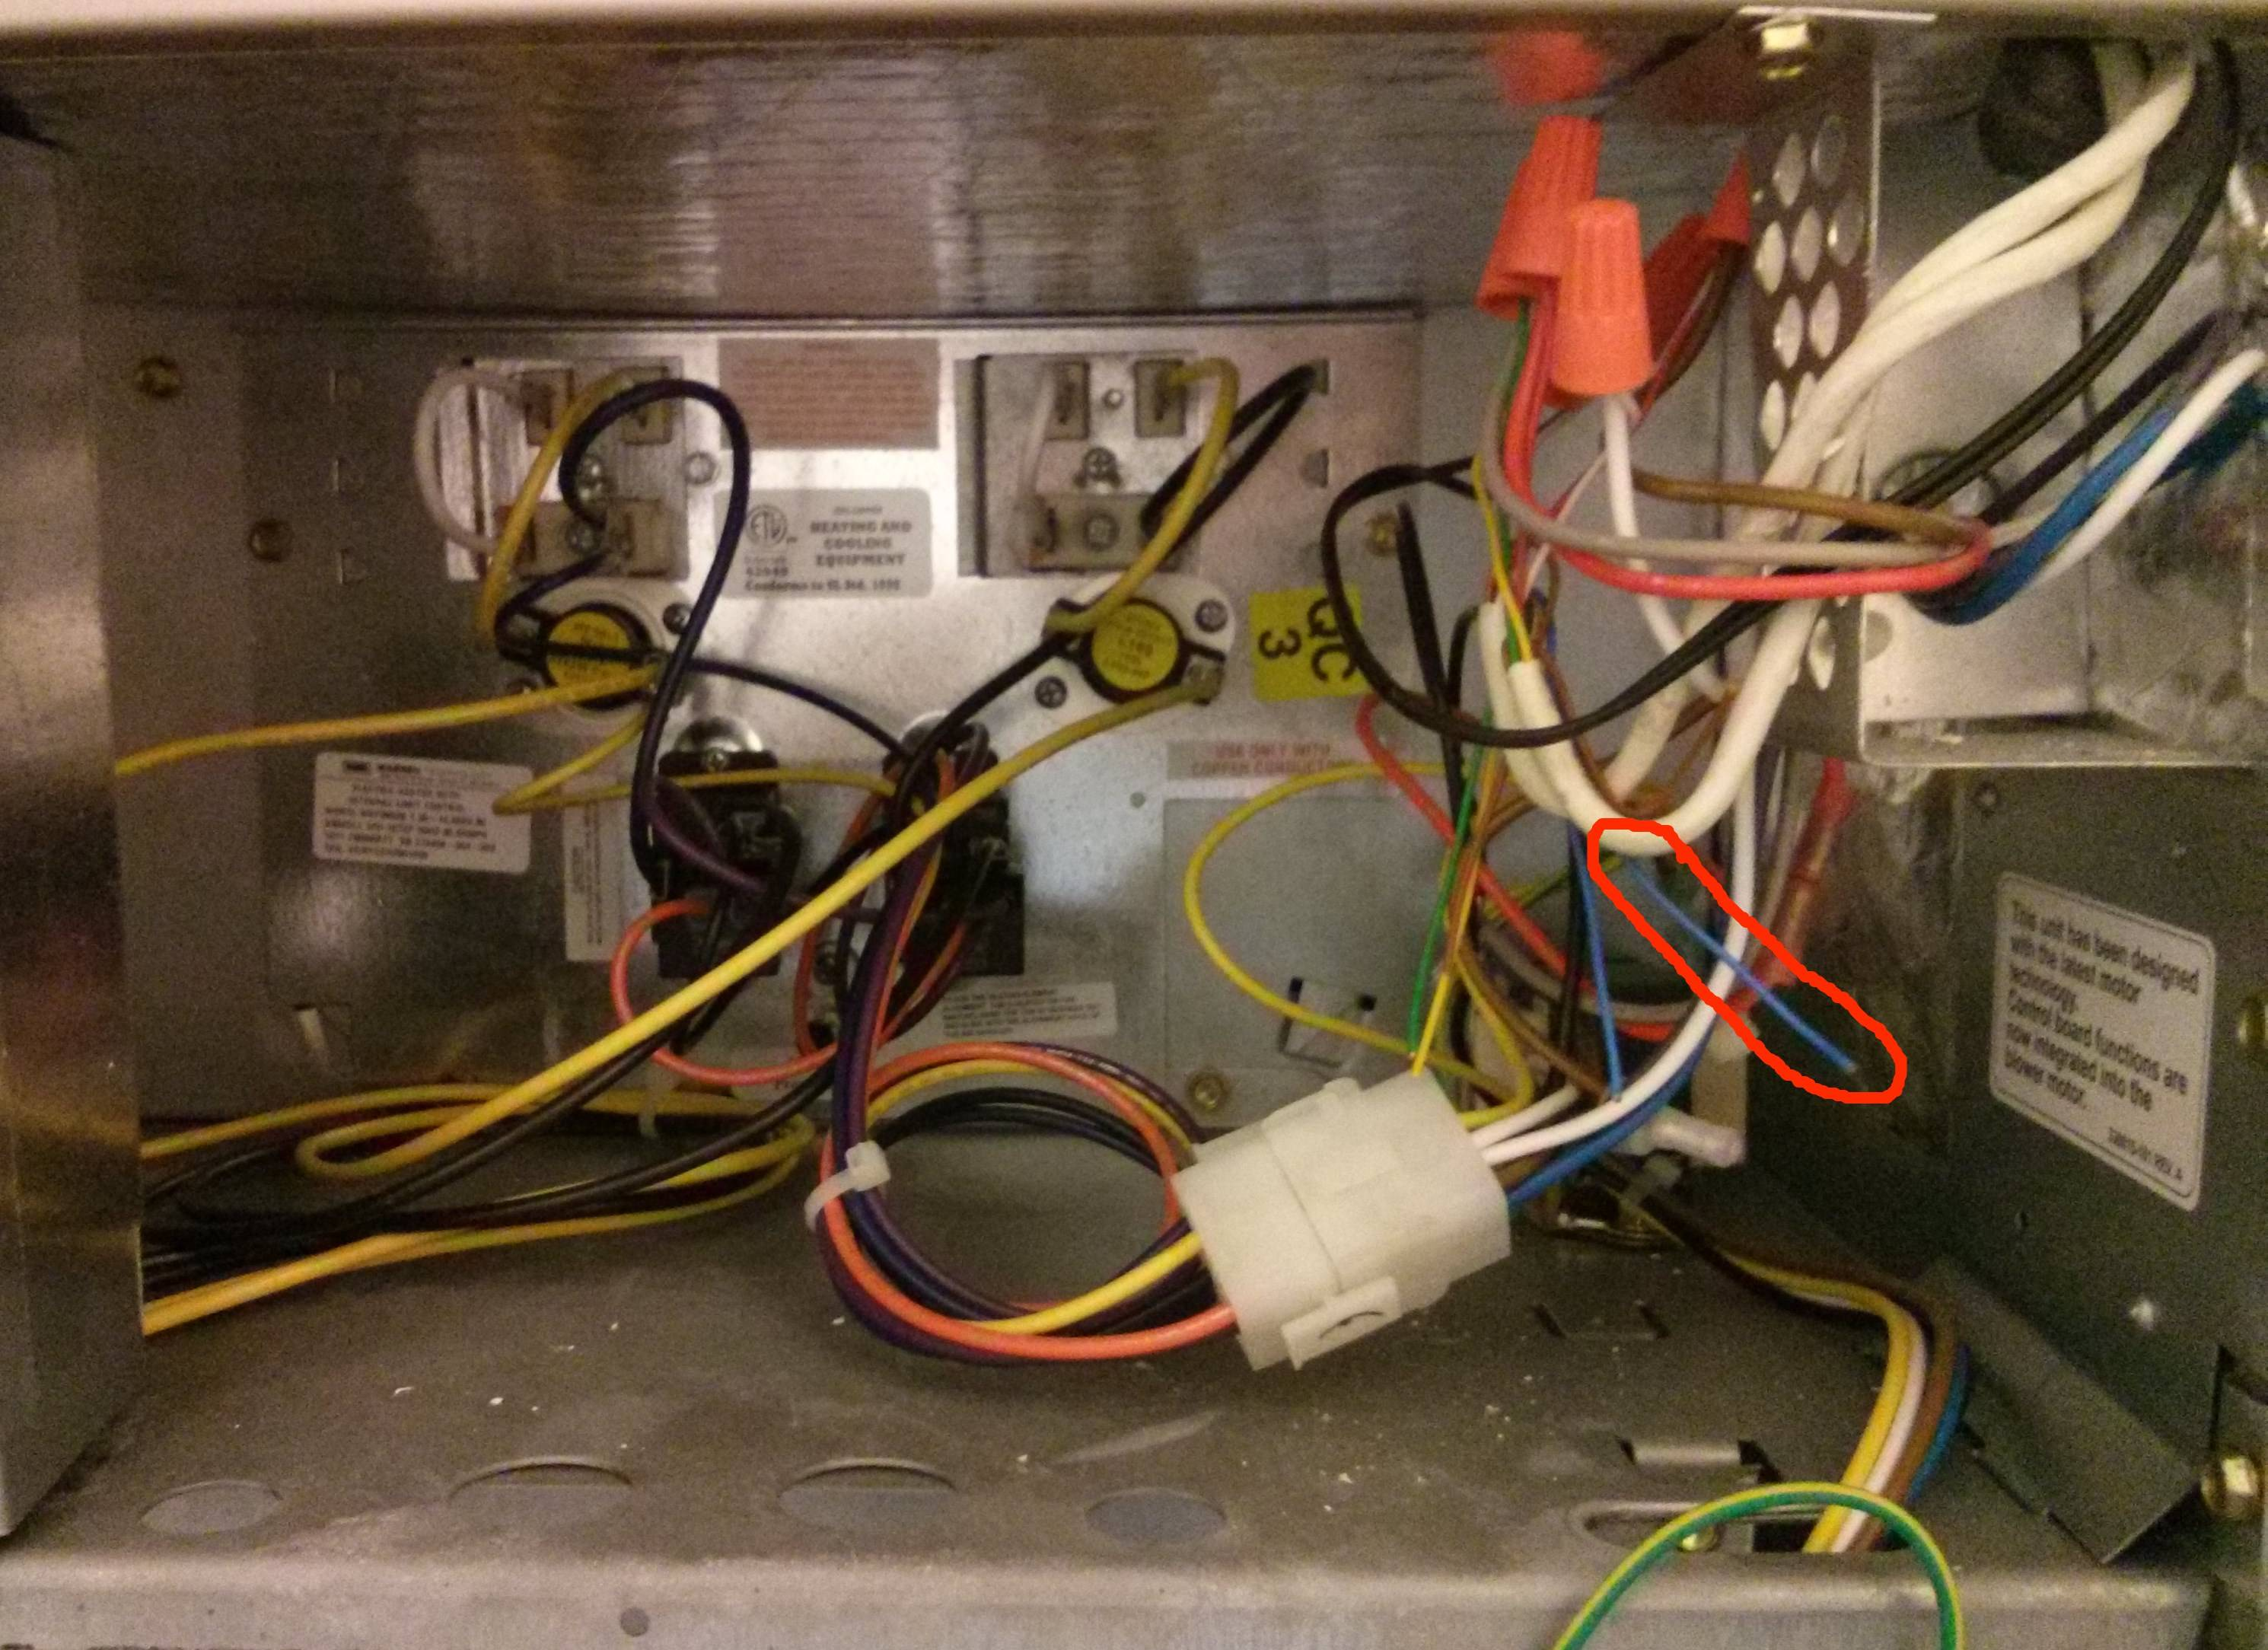 carrier electric furnace wiring diagram 2001 ford f150 starter solenoid how do i connect the common wire in a air